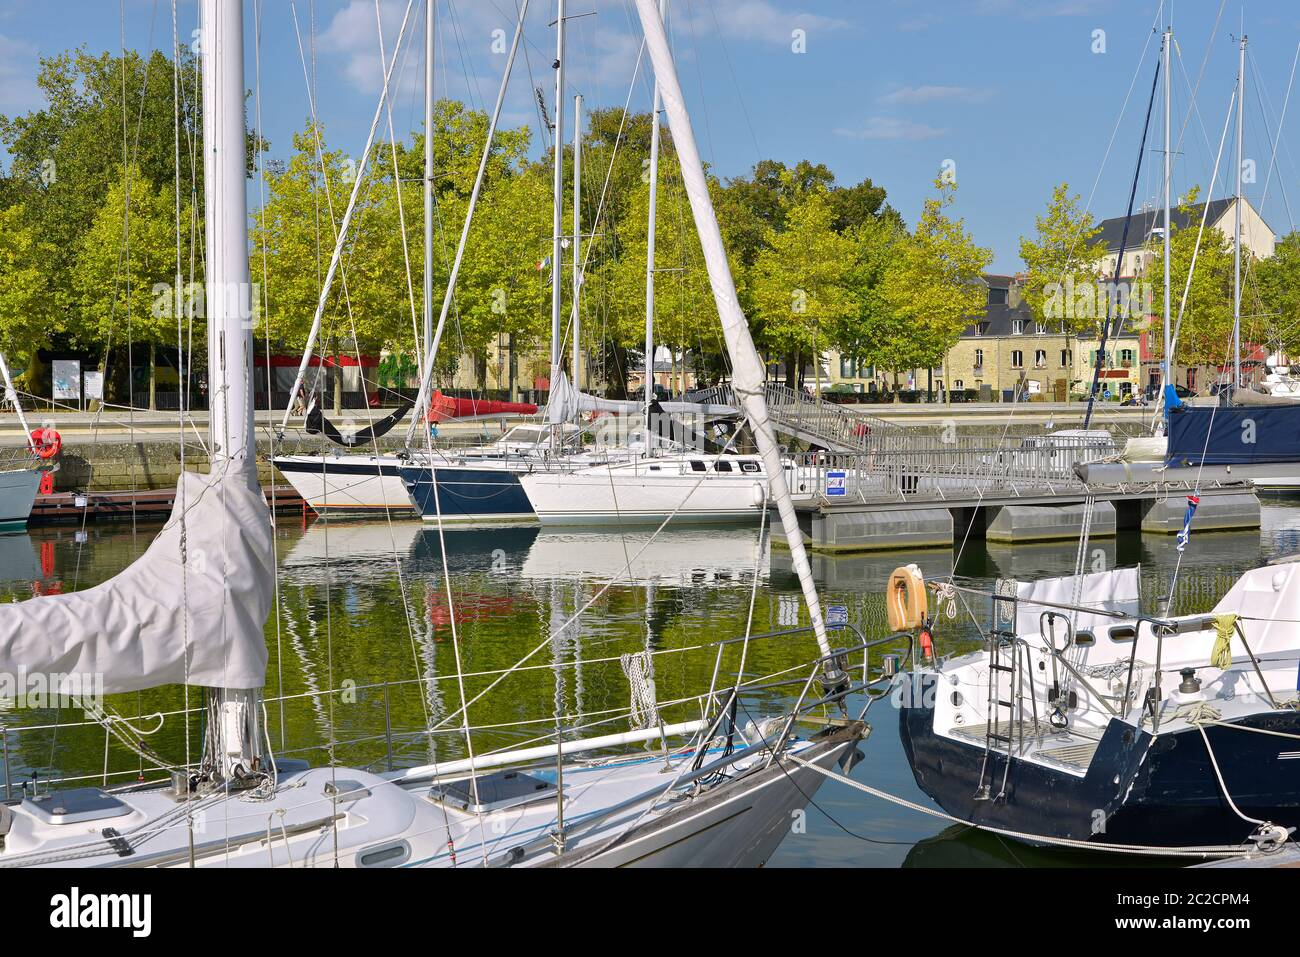 Sailboats in the port at Vannes, a commune in the Morbihan department in Brittany in north-western France Stock Photo